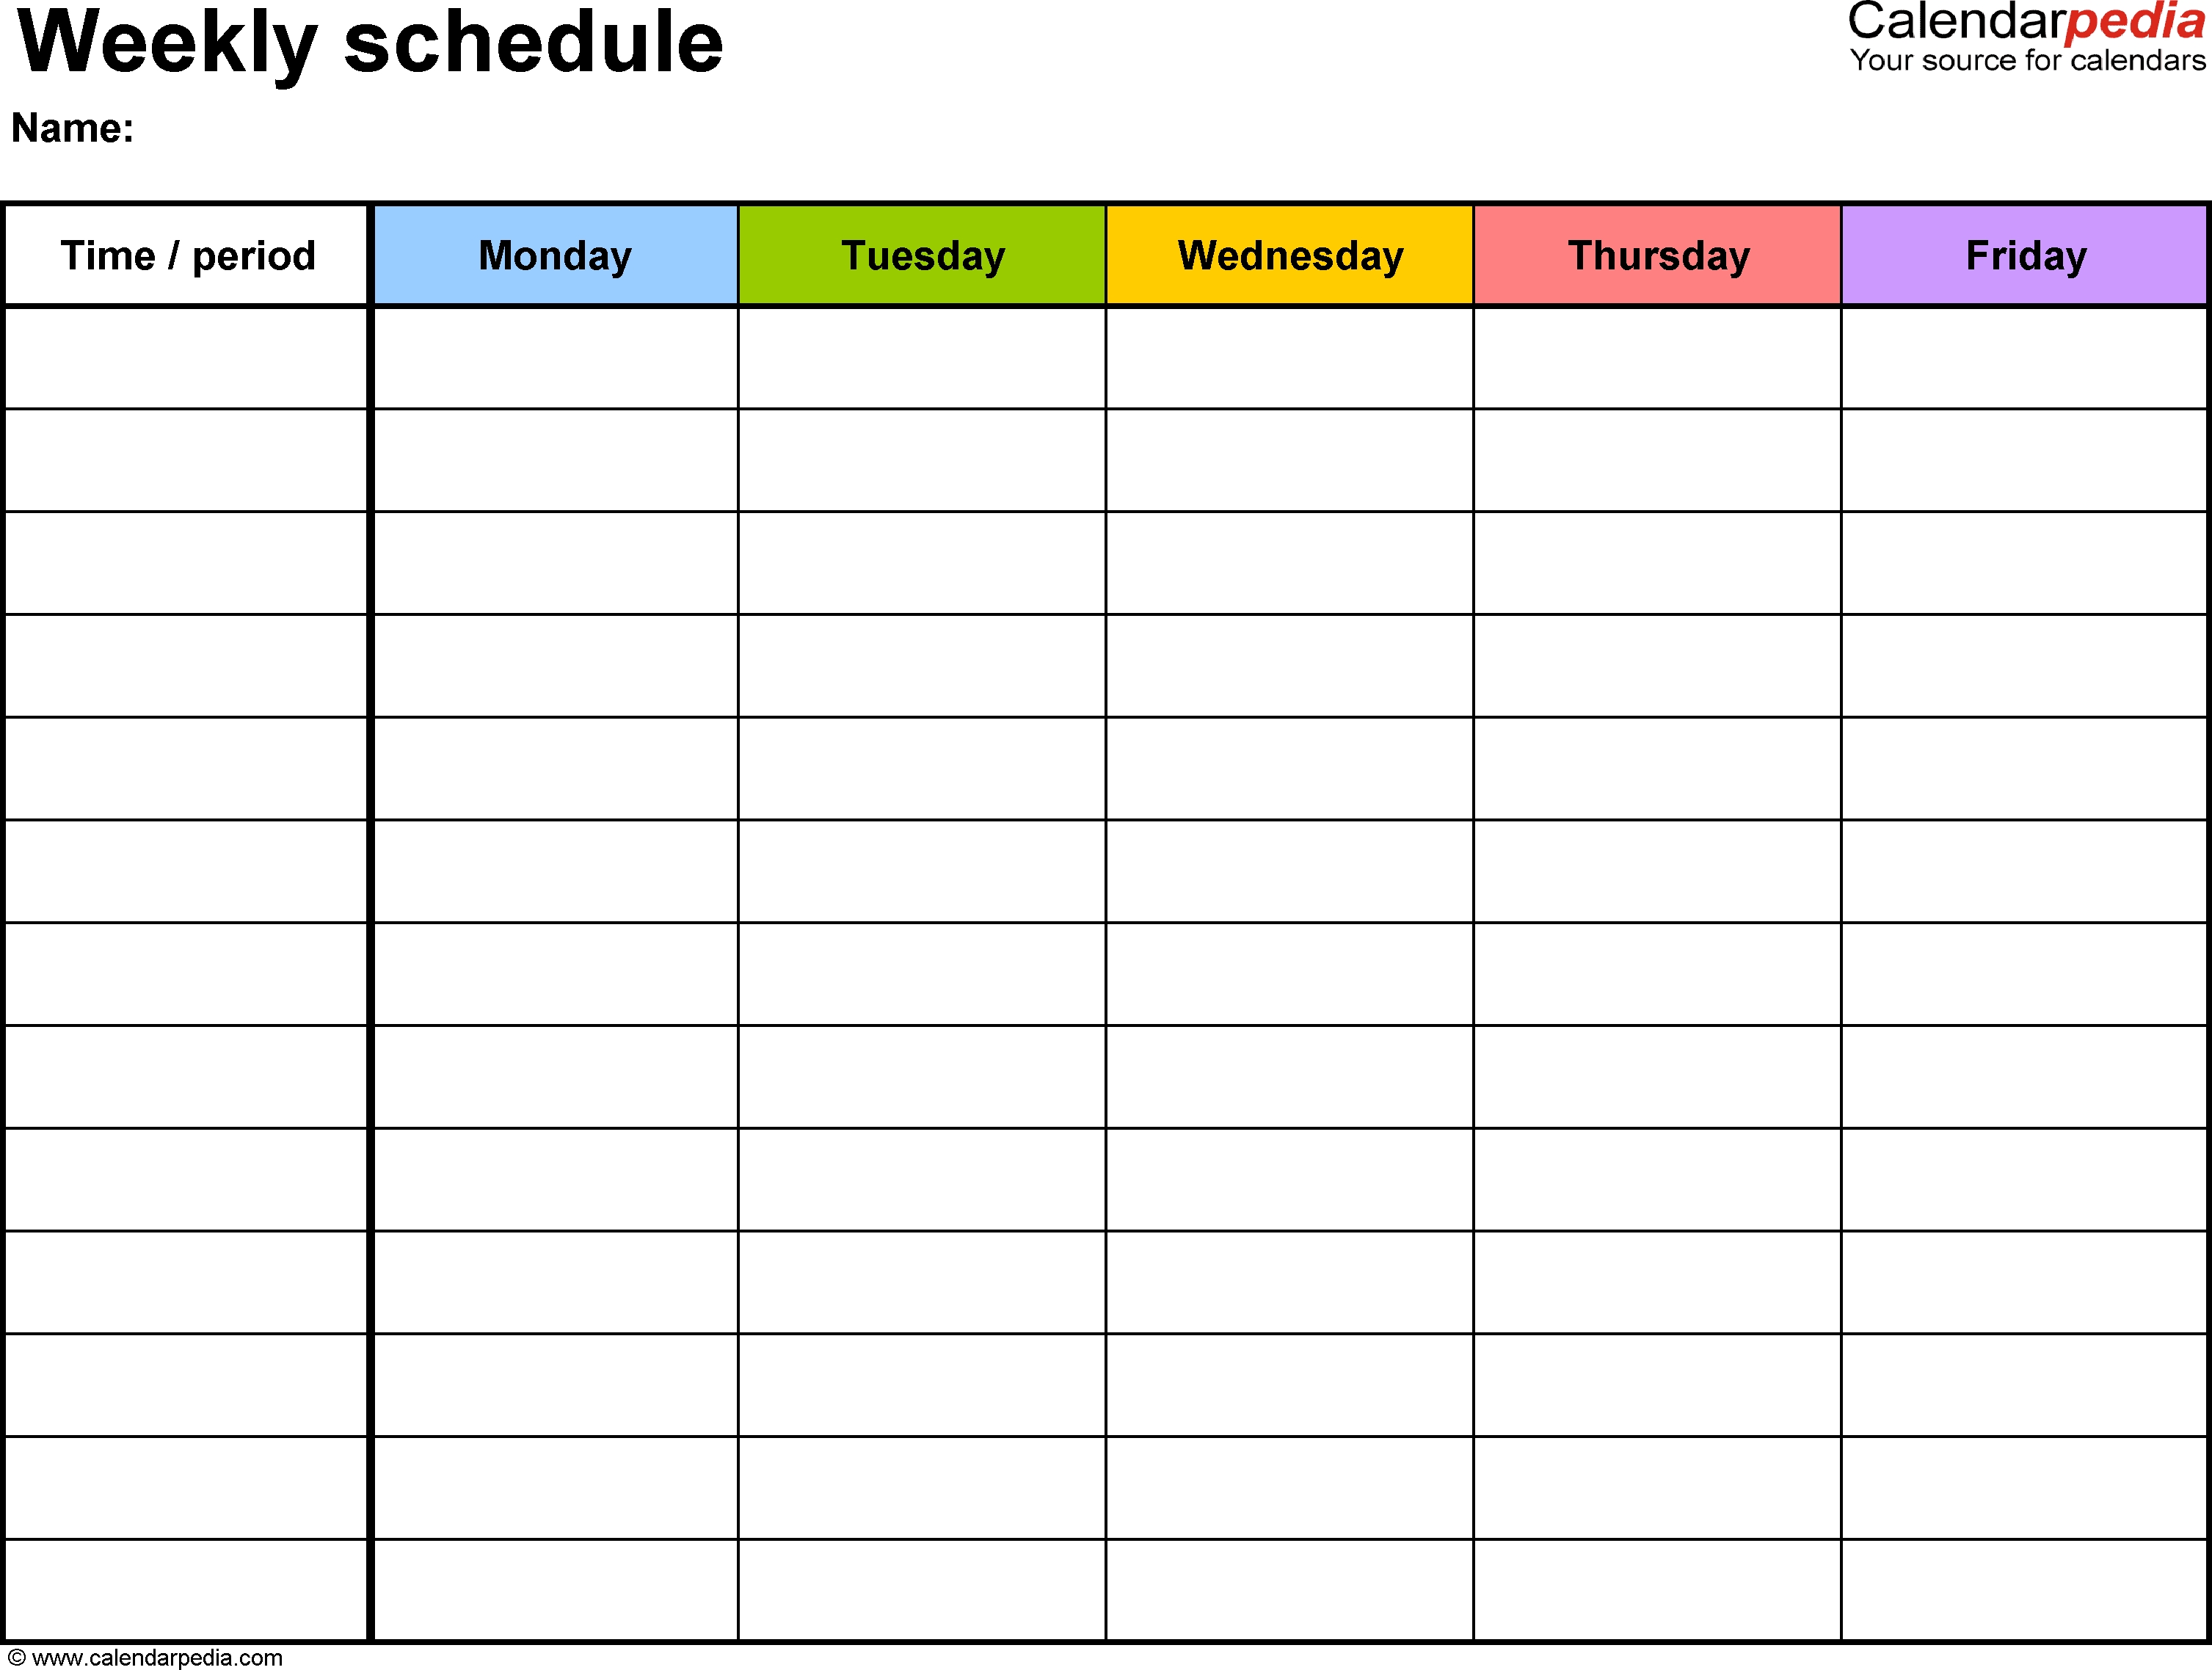 Weekly Schedule Template For Word Version 1 Landscape 1 Page  Xjb